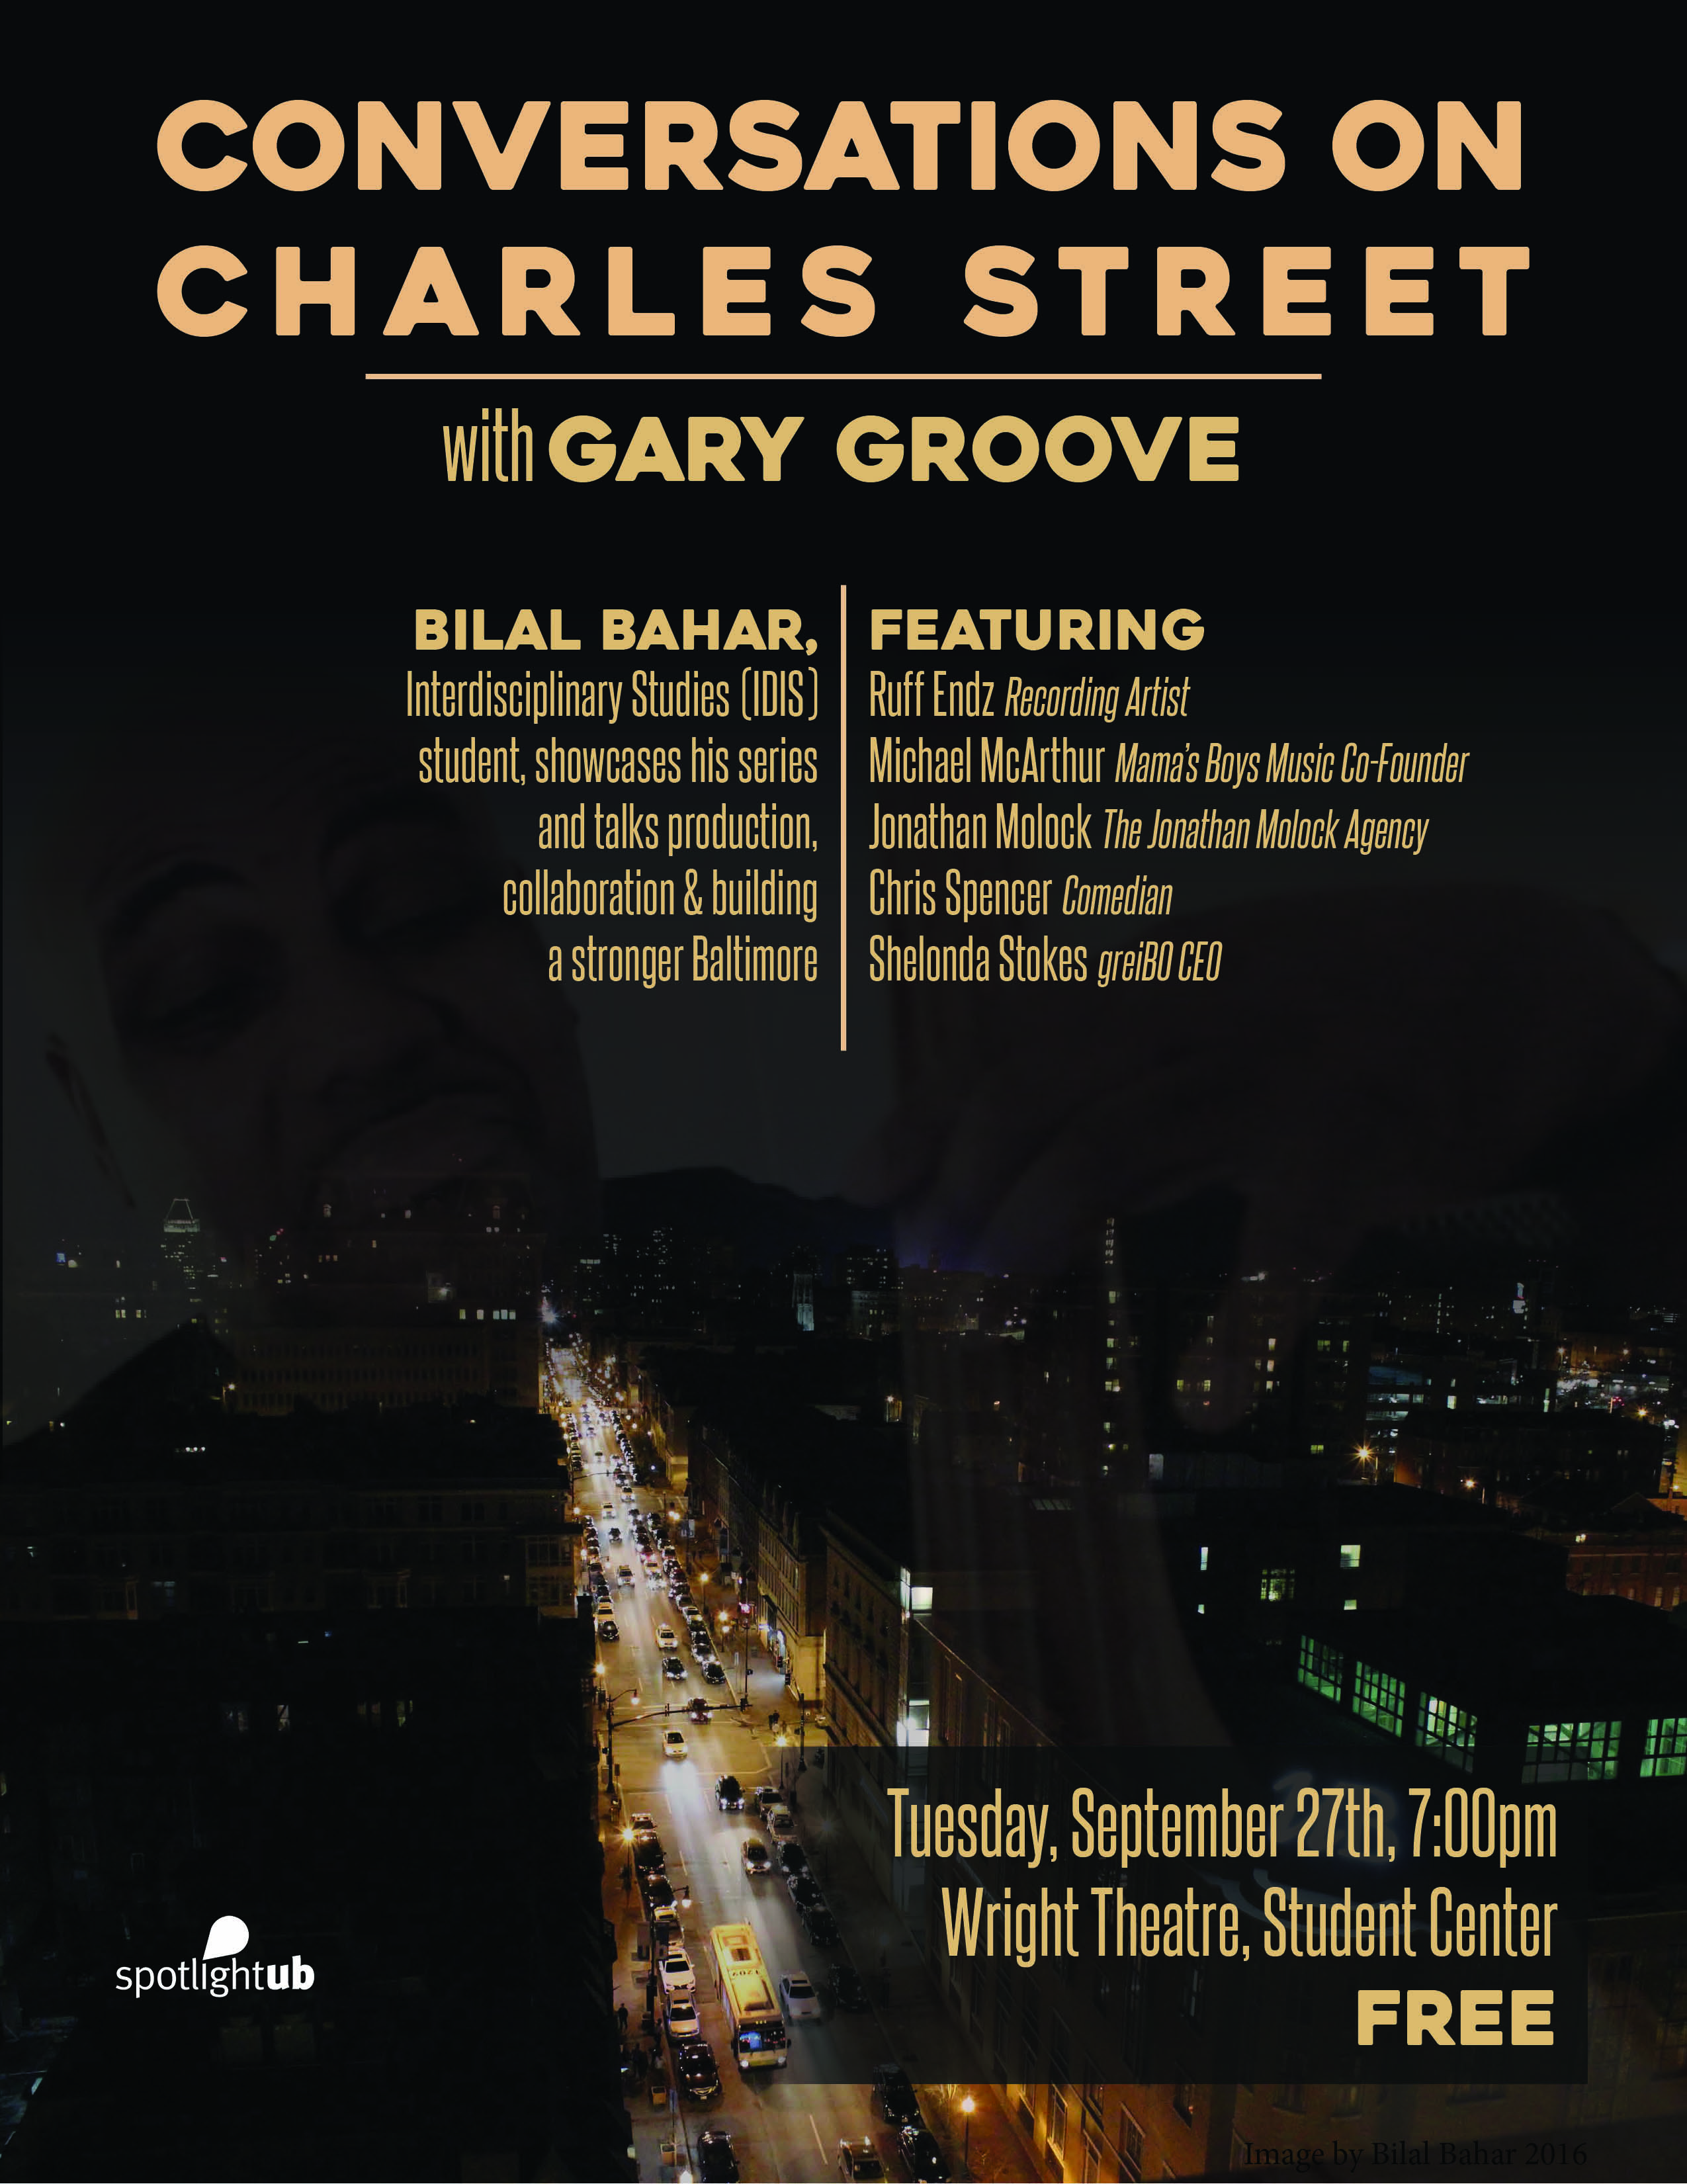 Charles Street Conversations